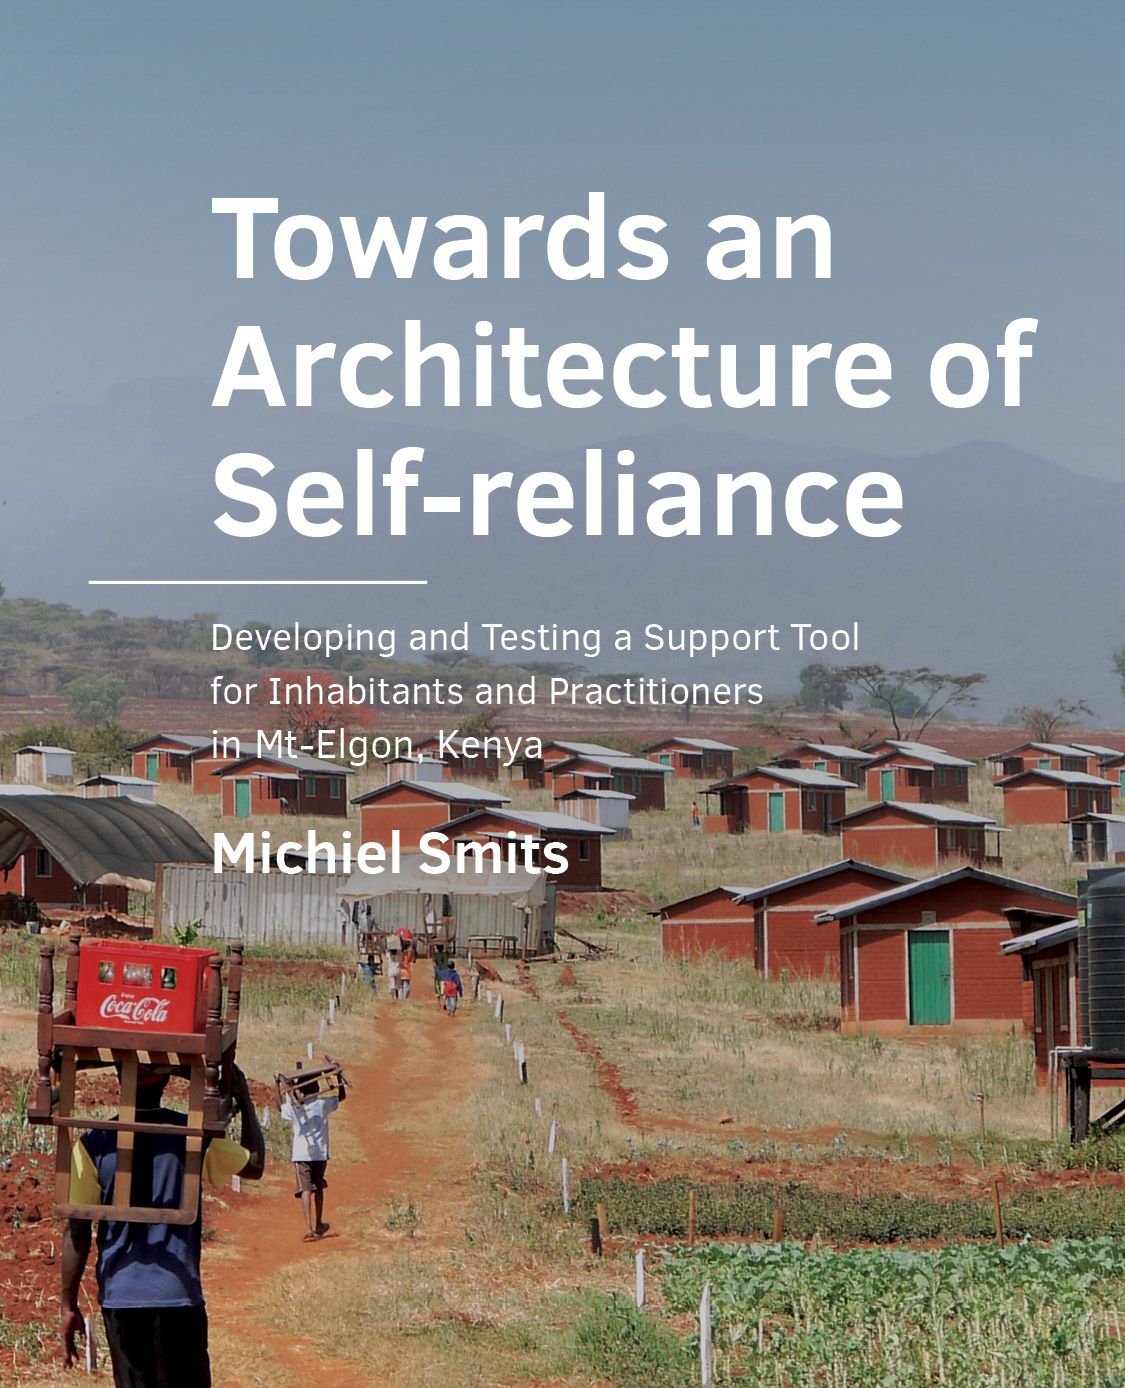 View No. 19 (2020): Towards an Architecture of Self-reliance